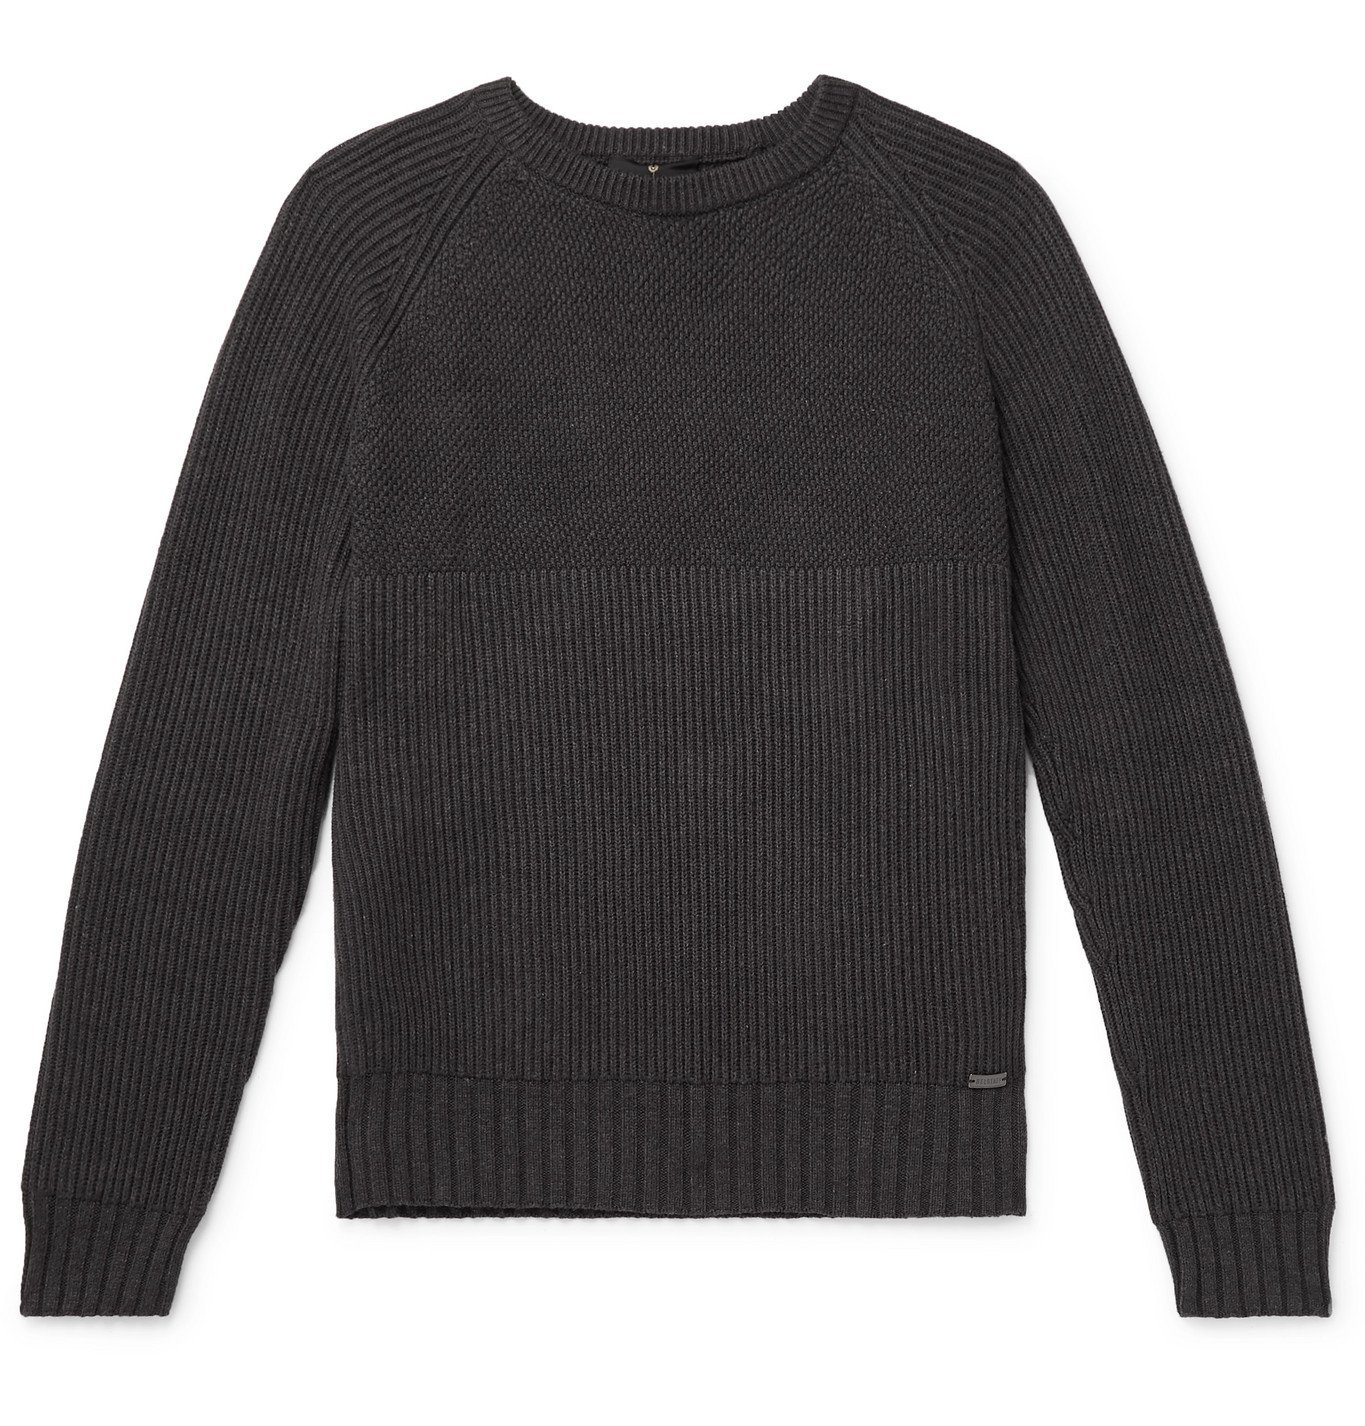 Belstaff - Marine Slim-Fit Cotton Sweater - Gray